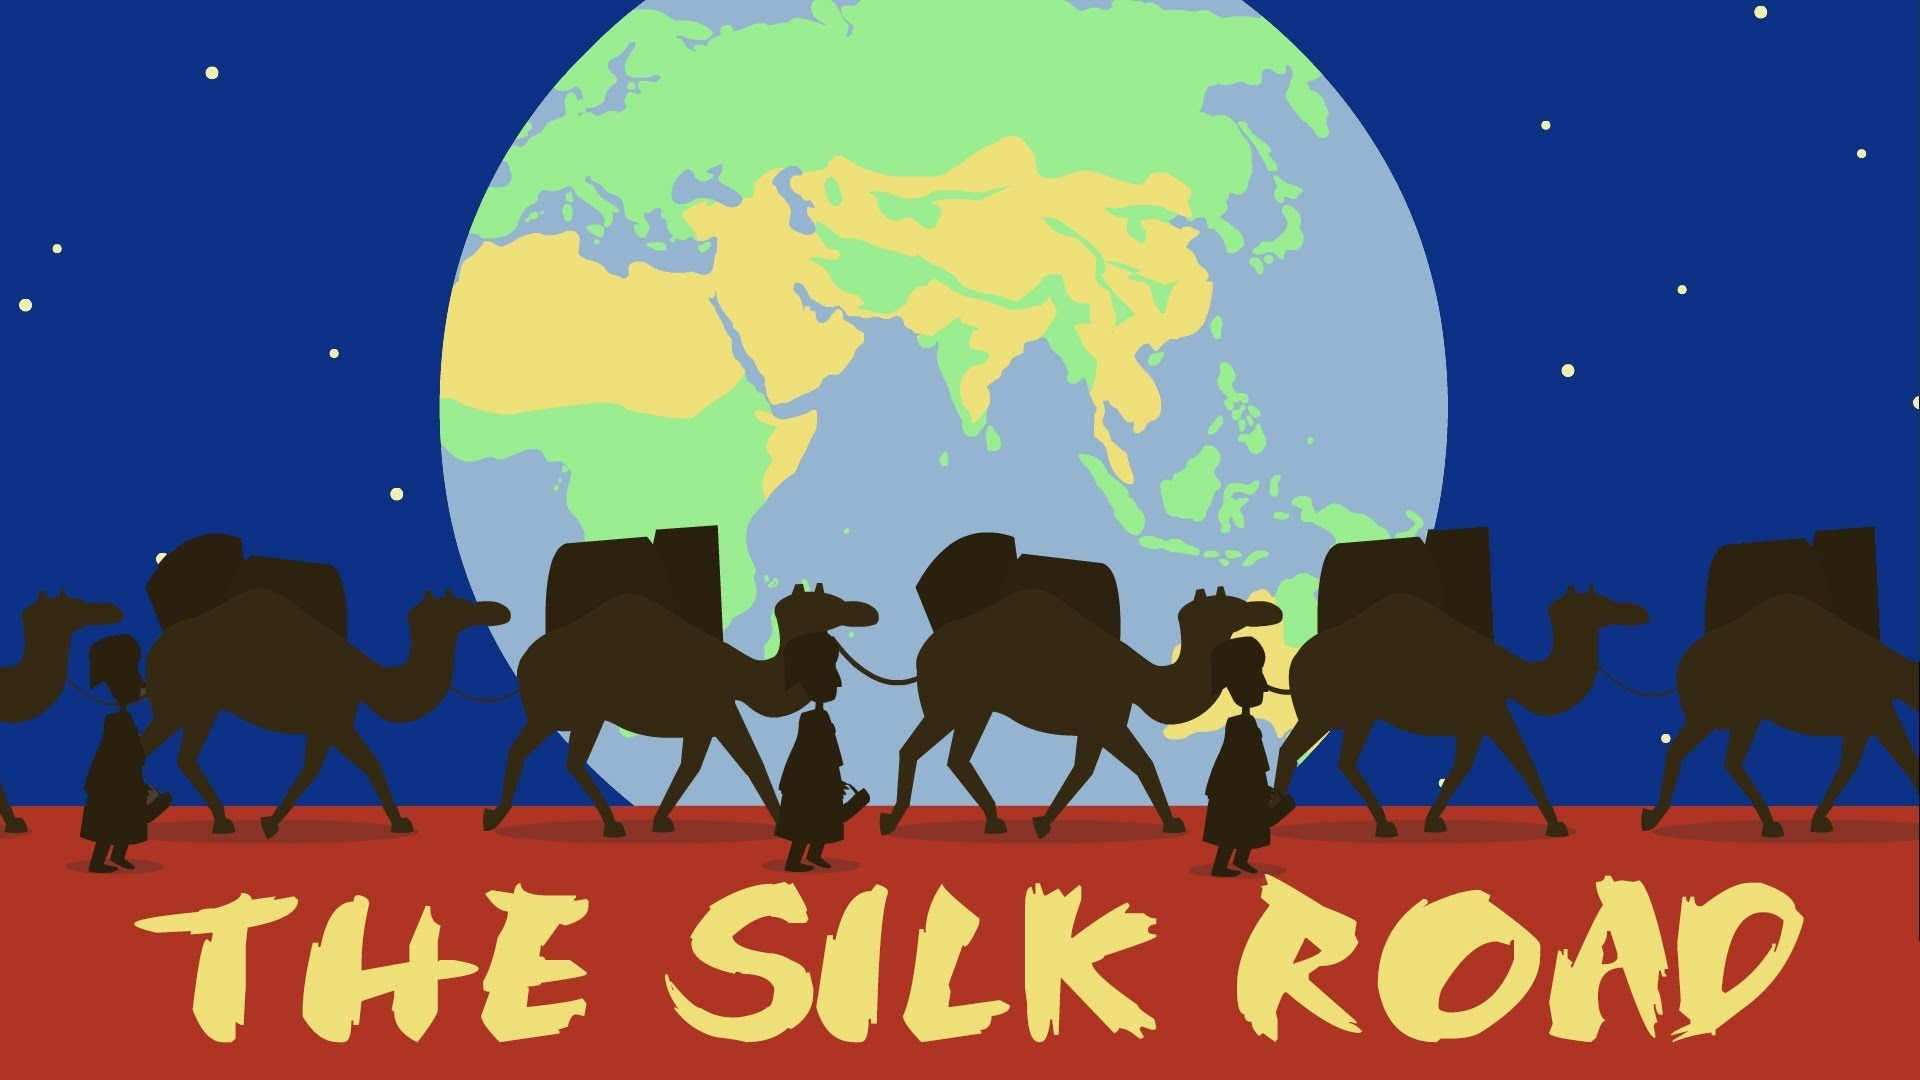 The Silk Road: Connecting the ancient world through trade.